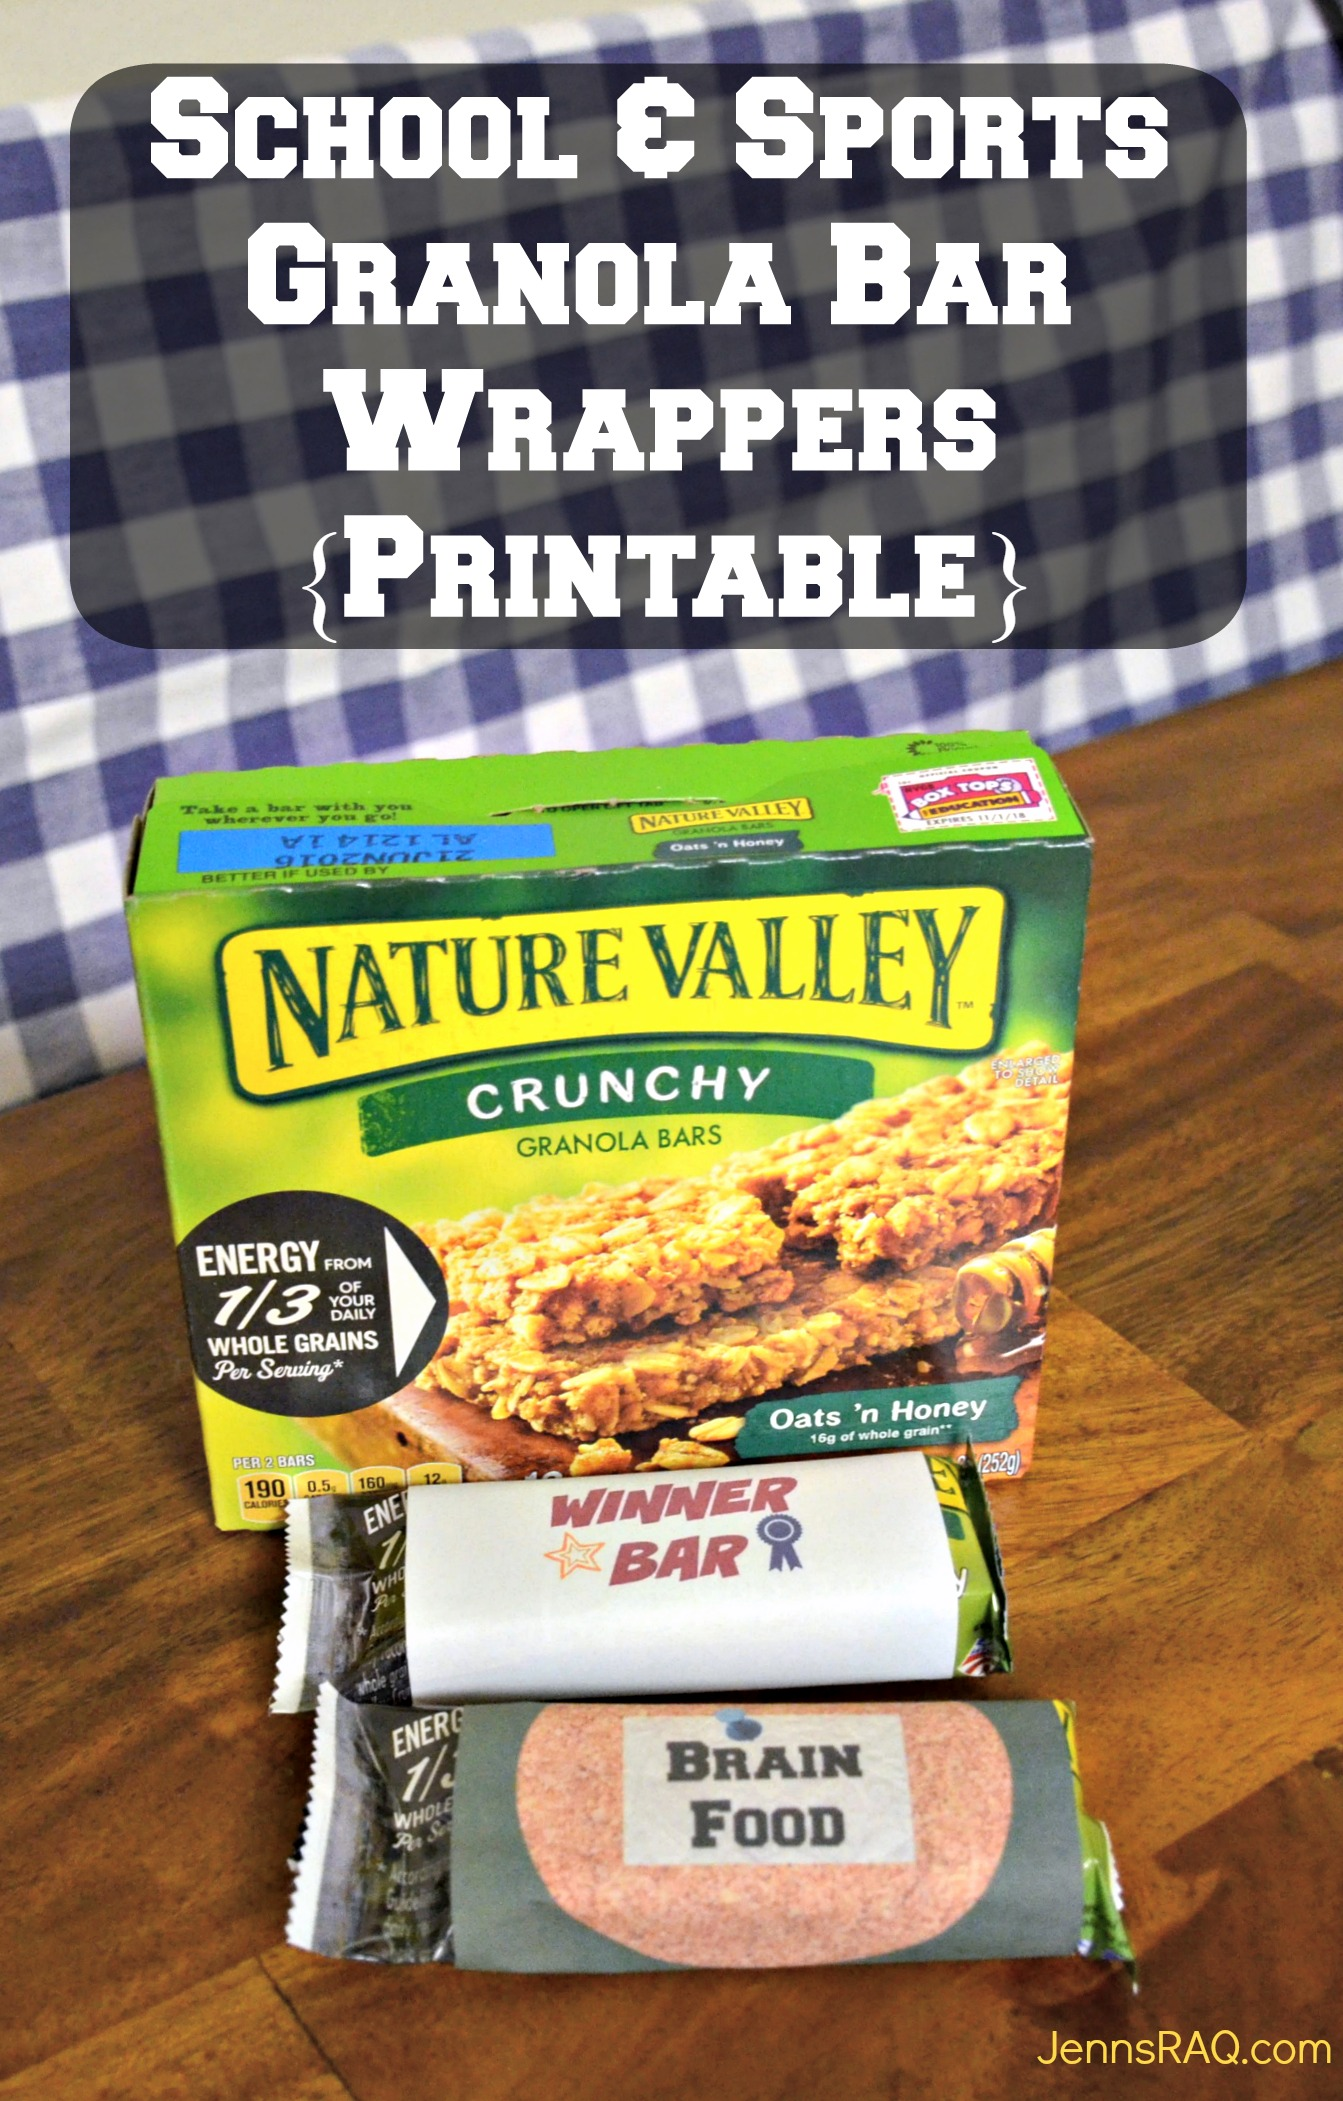 School and Sports Granola Bar Wrappers Printable as seen on jennsRAQ.com #AStockUpSale #TomThumb AD